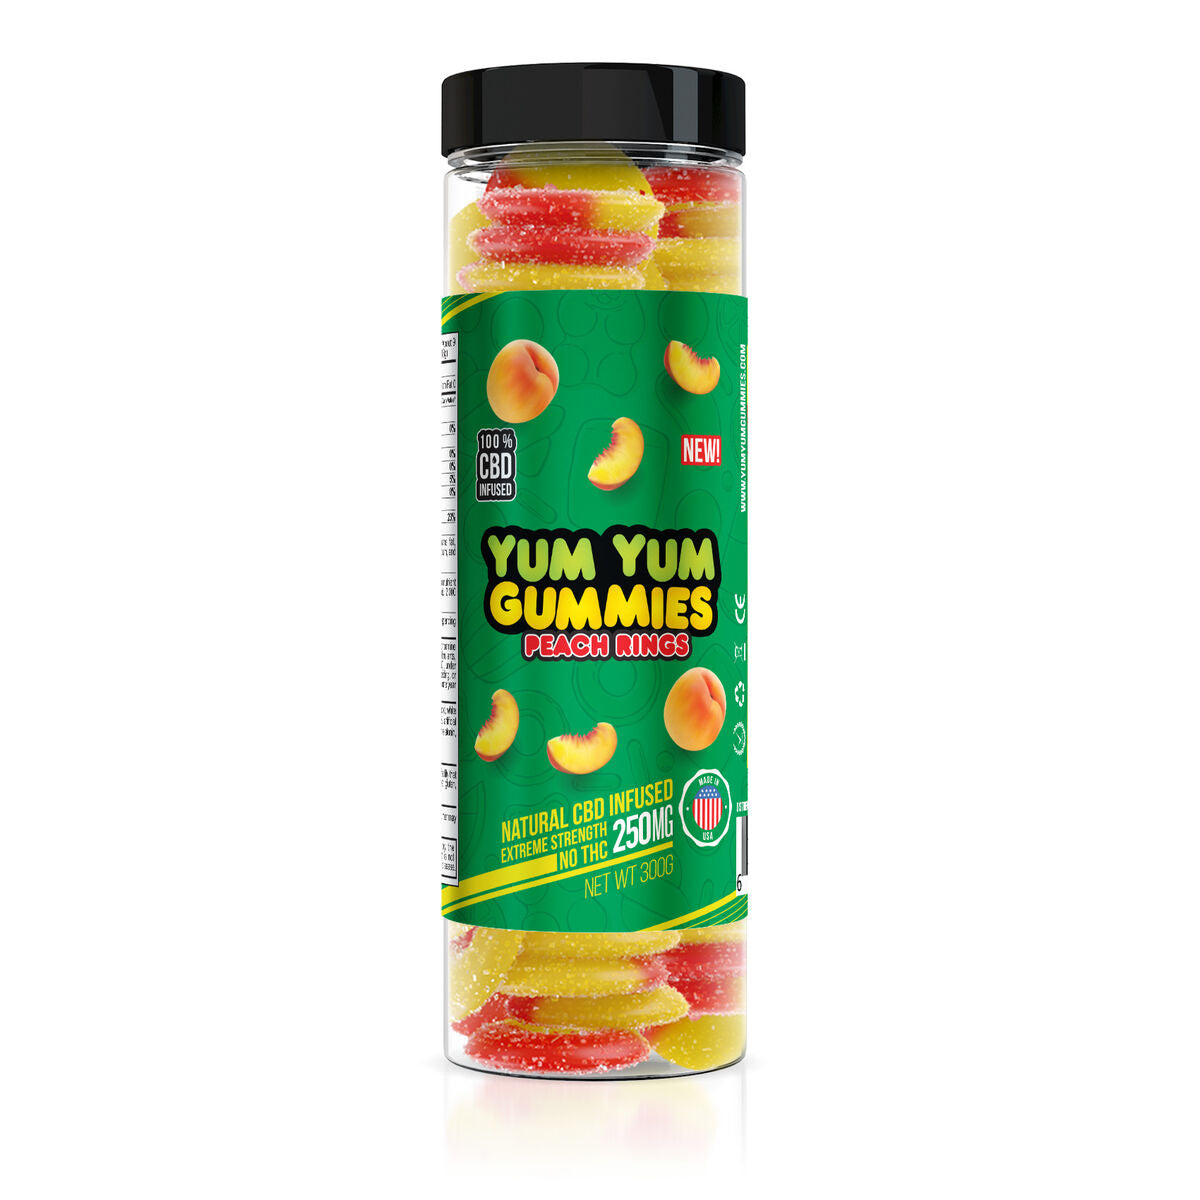 Yum Yum Gummies 250mg - CBD Infused Peach Rings